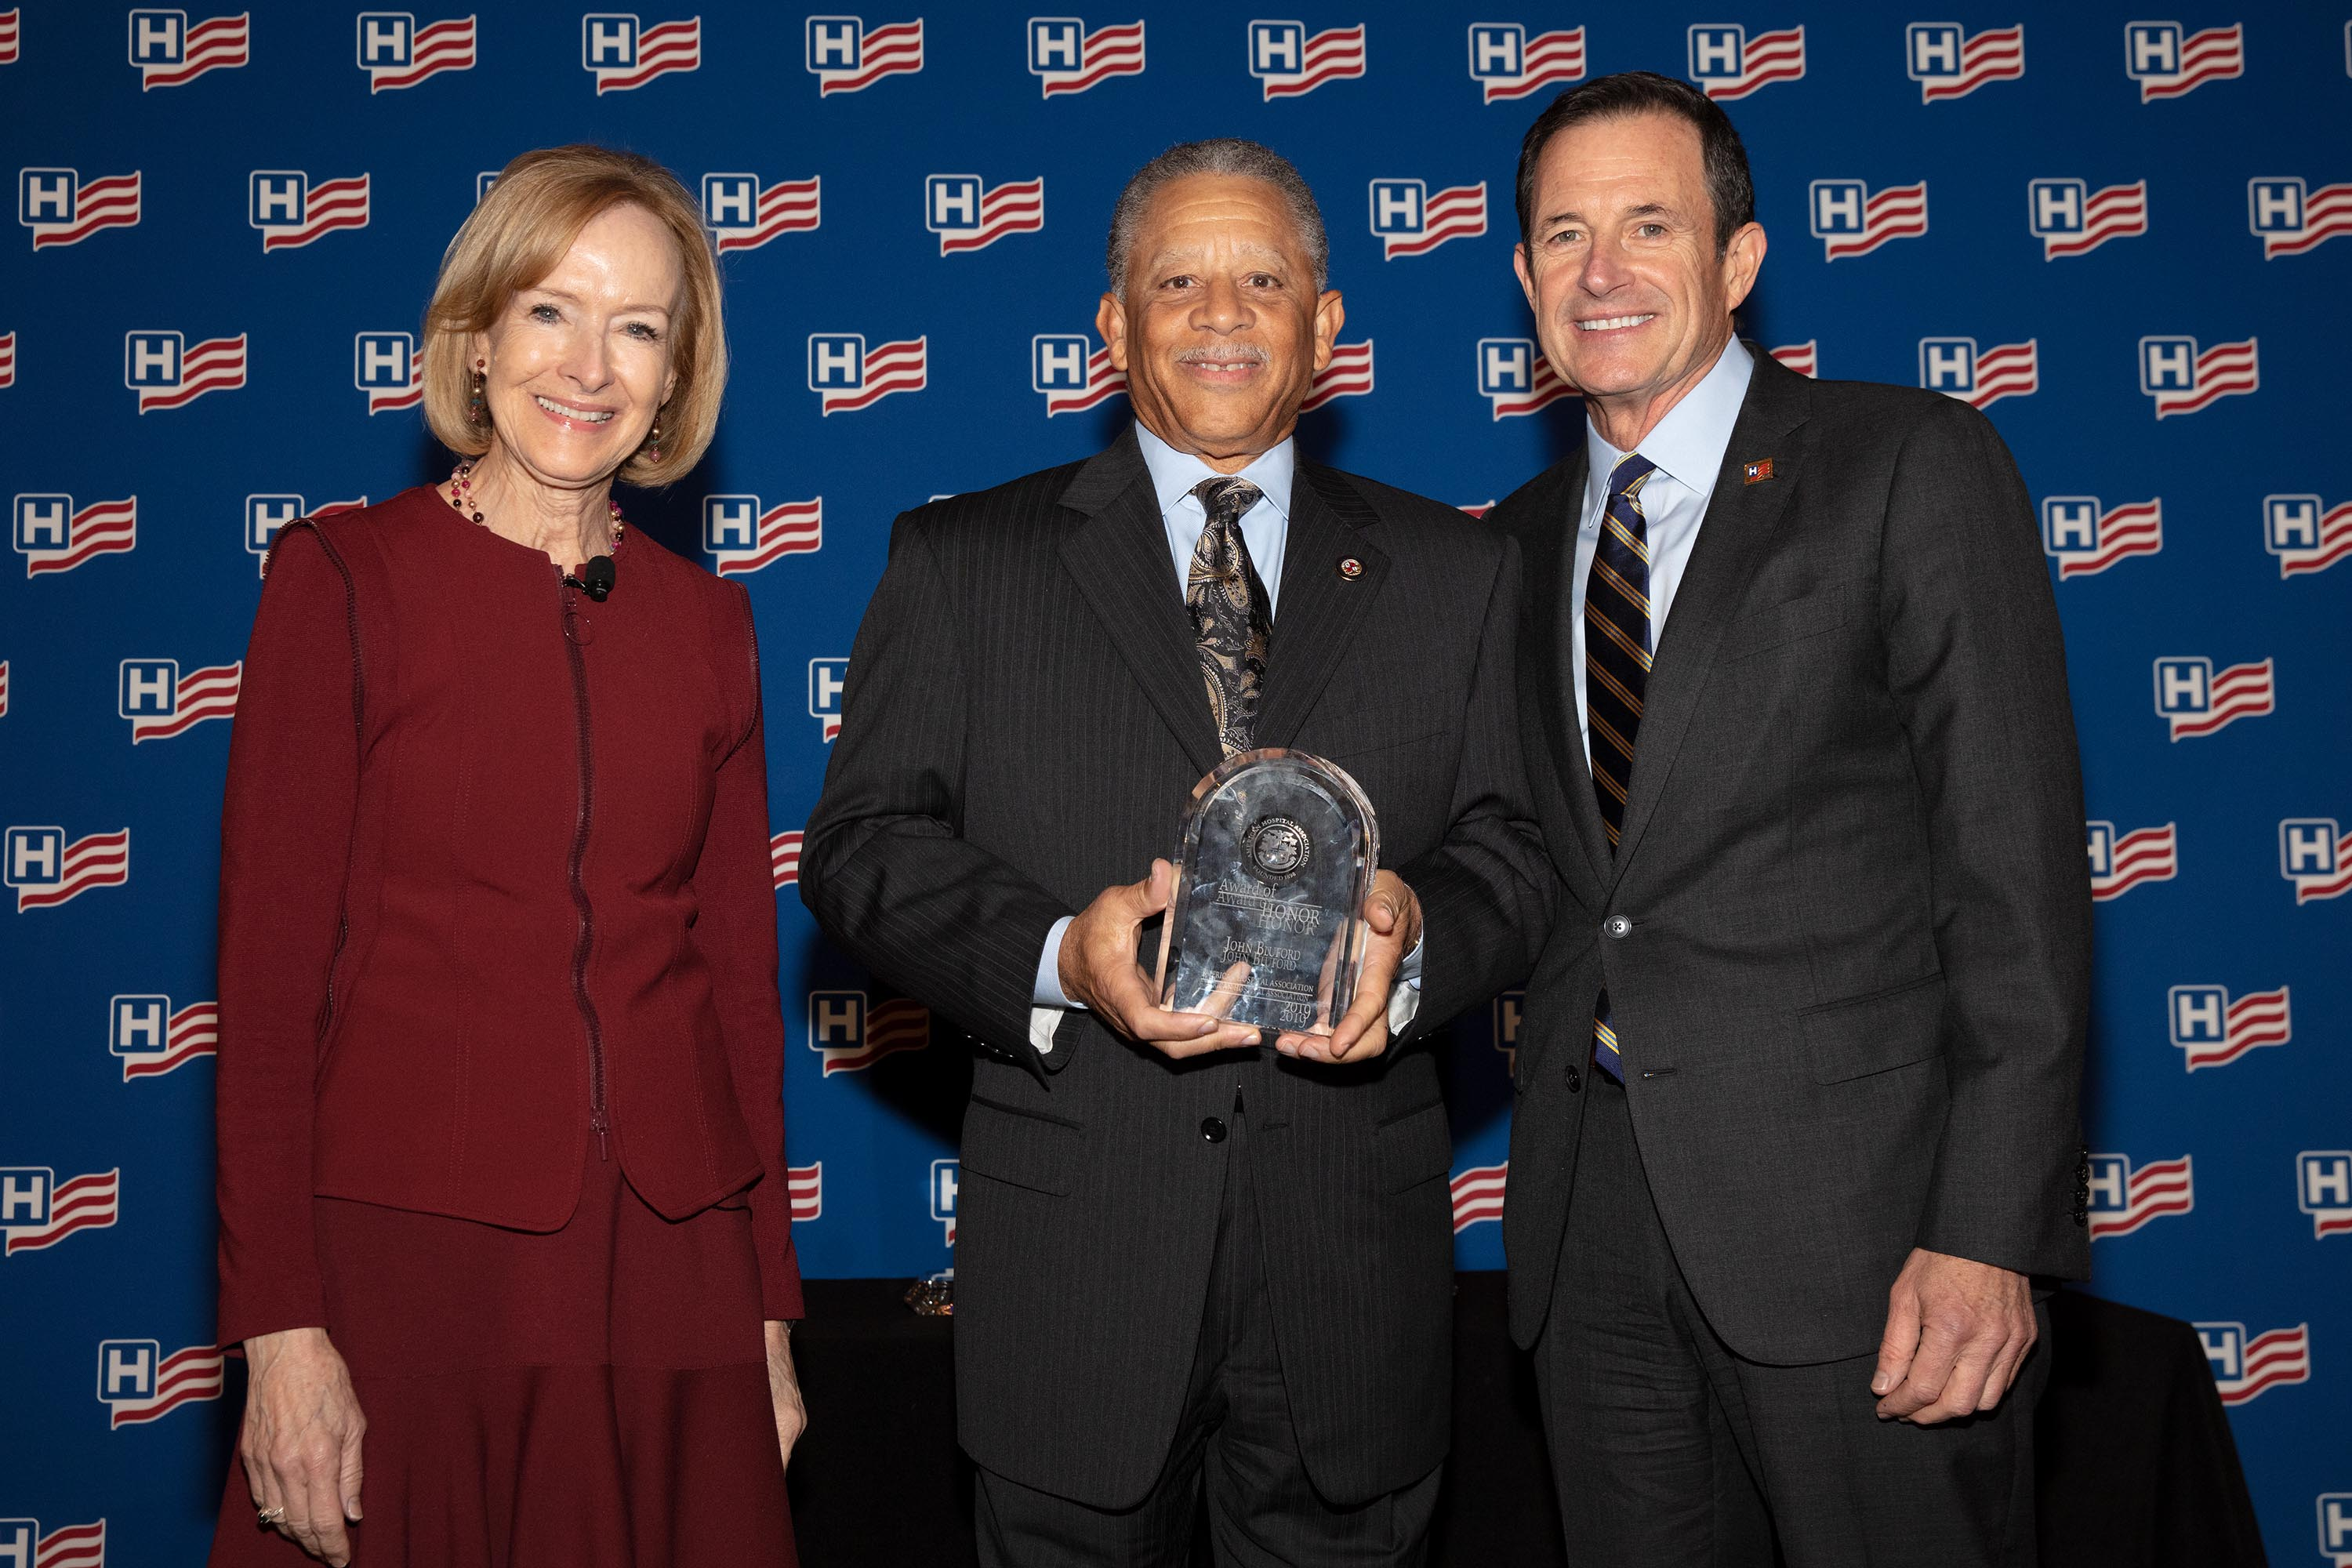 John W. Bluford, III - AHA Award